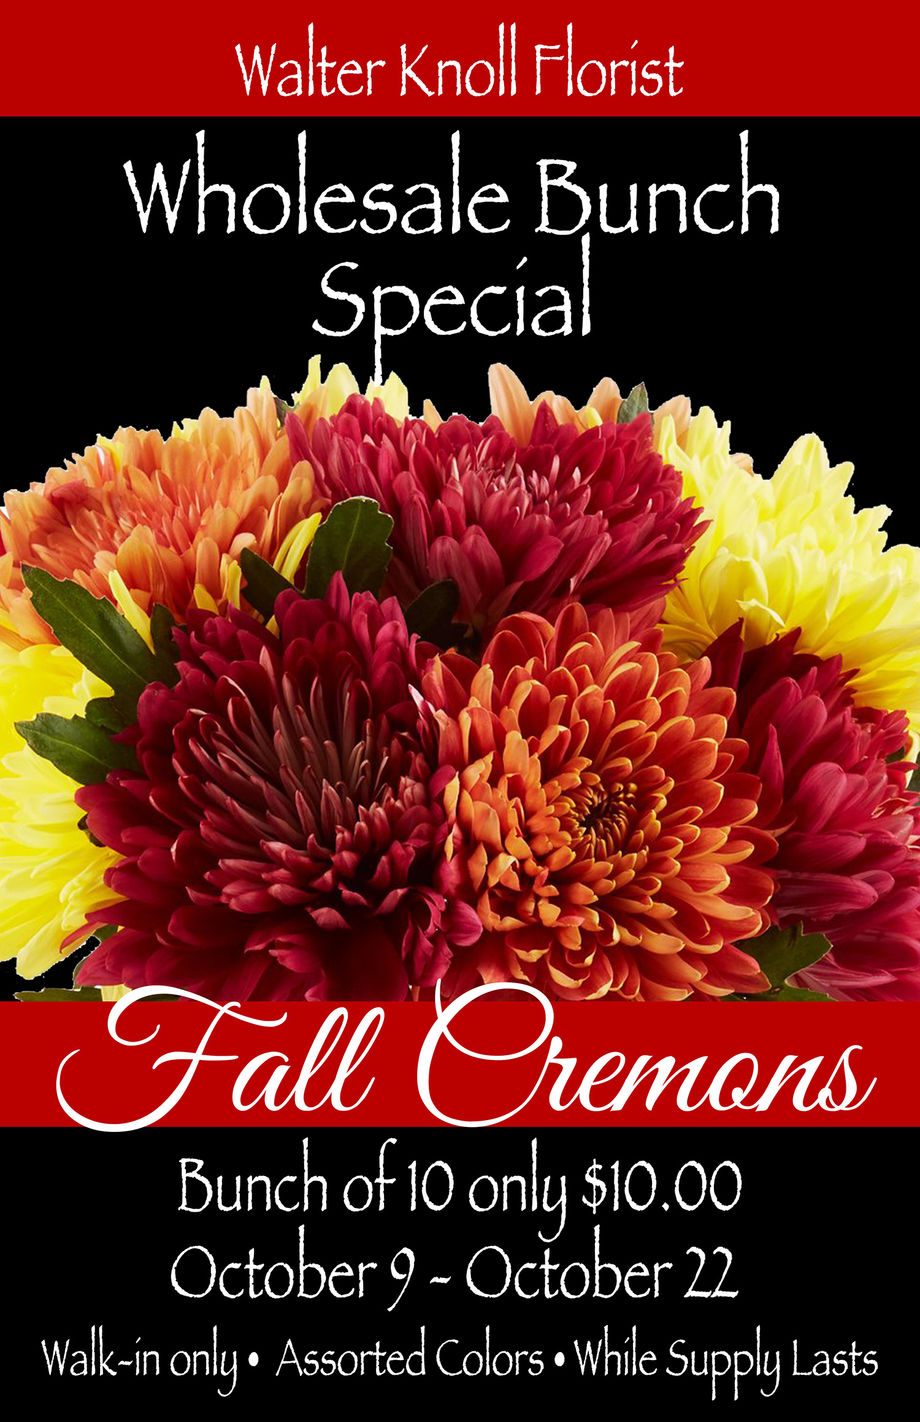 Fall Cremons Bunch Special Walter Knoll Florist